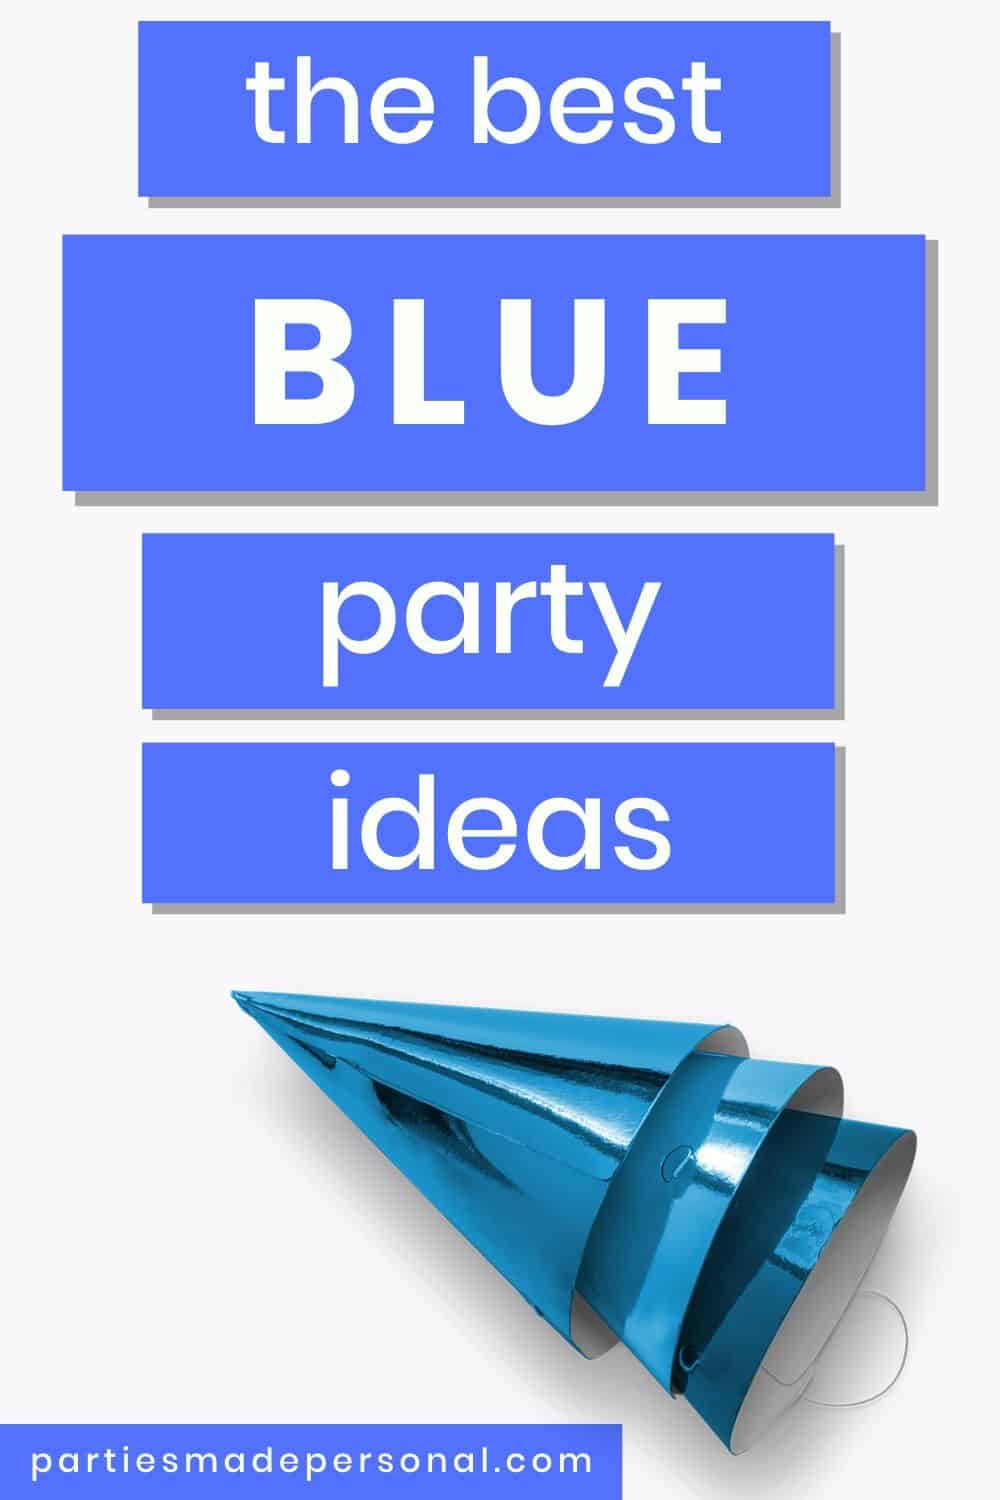 Best Blue Party Themes Easy Ideas For Your Next Party Parties Made Personal